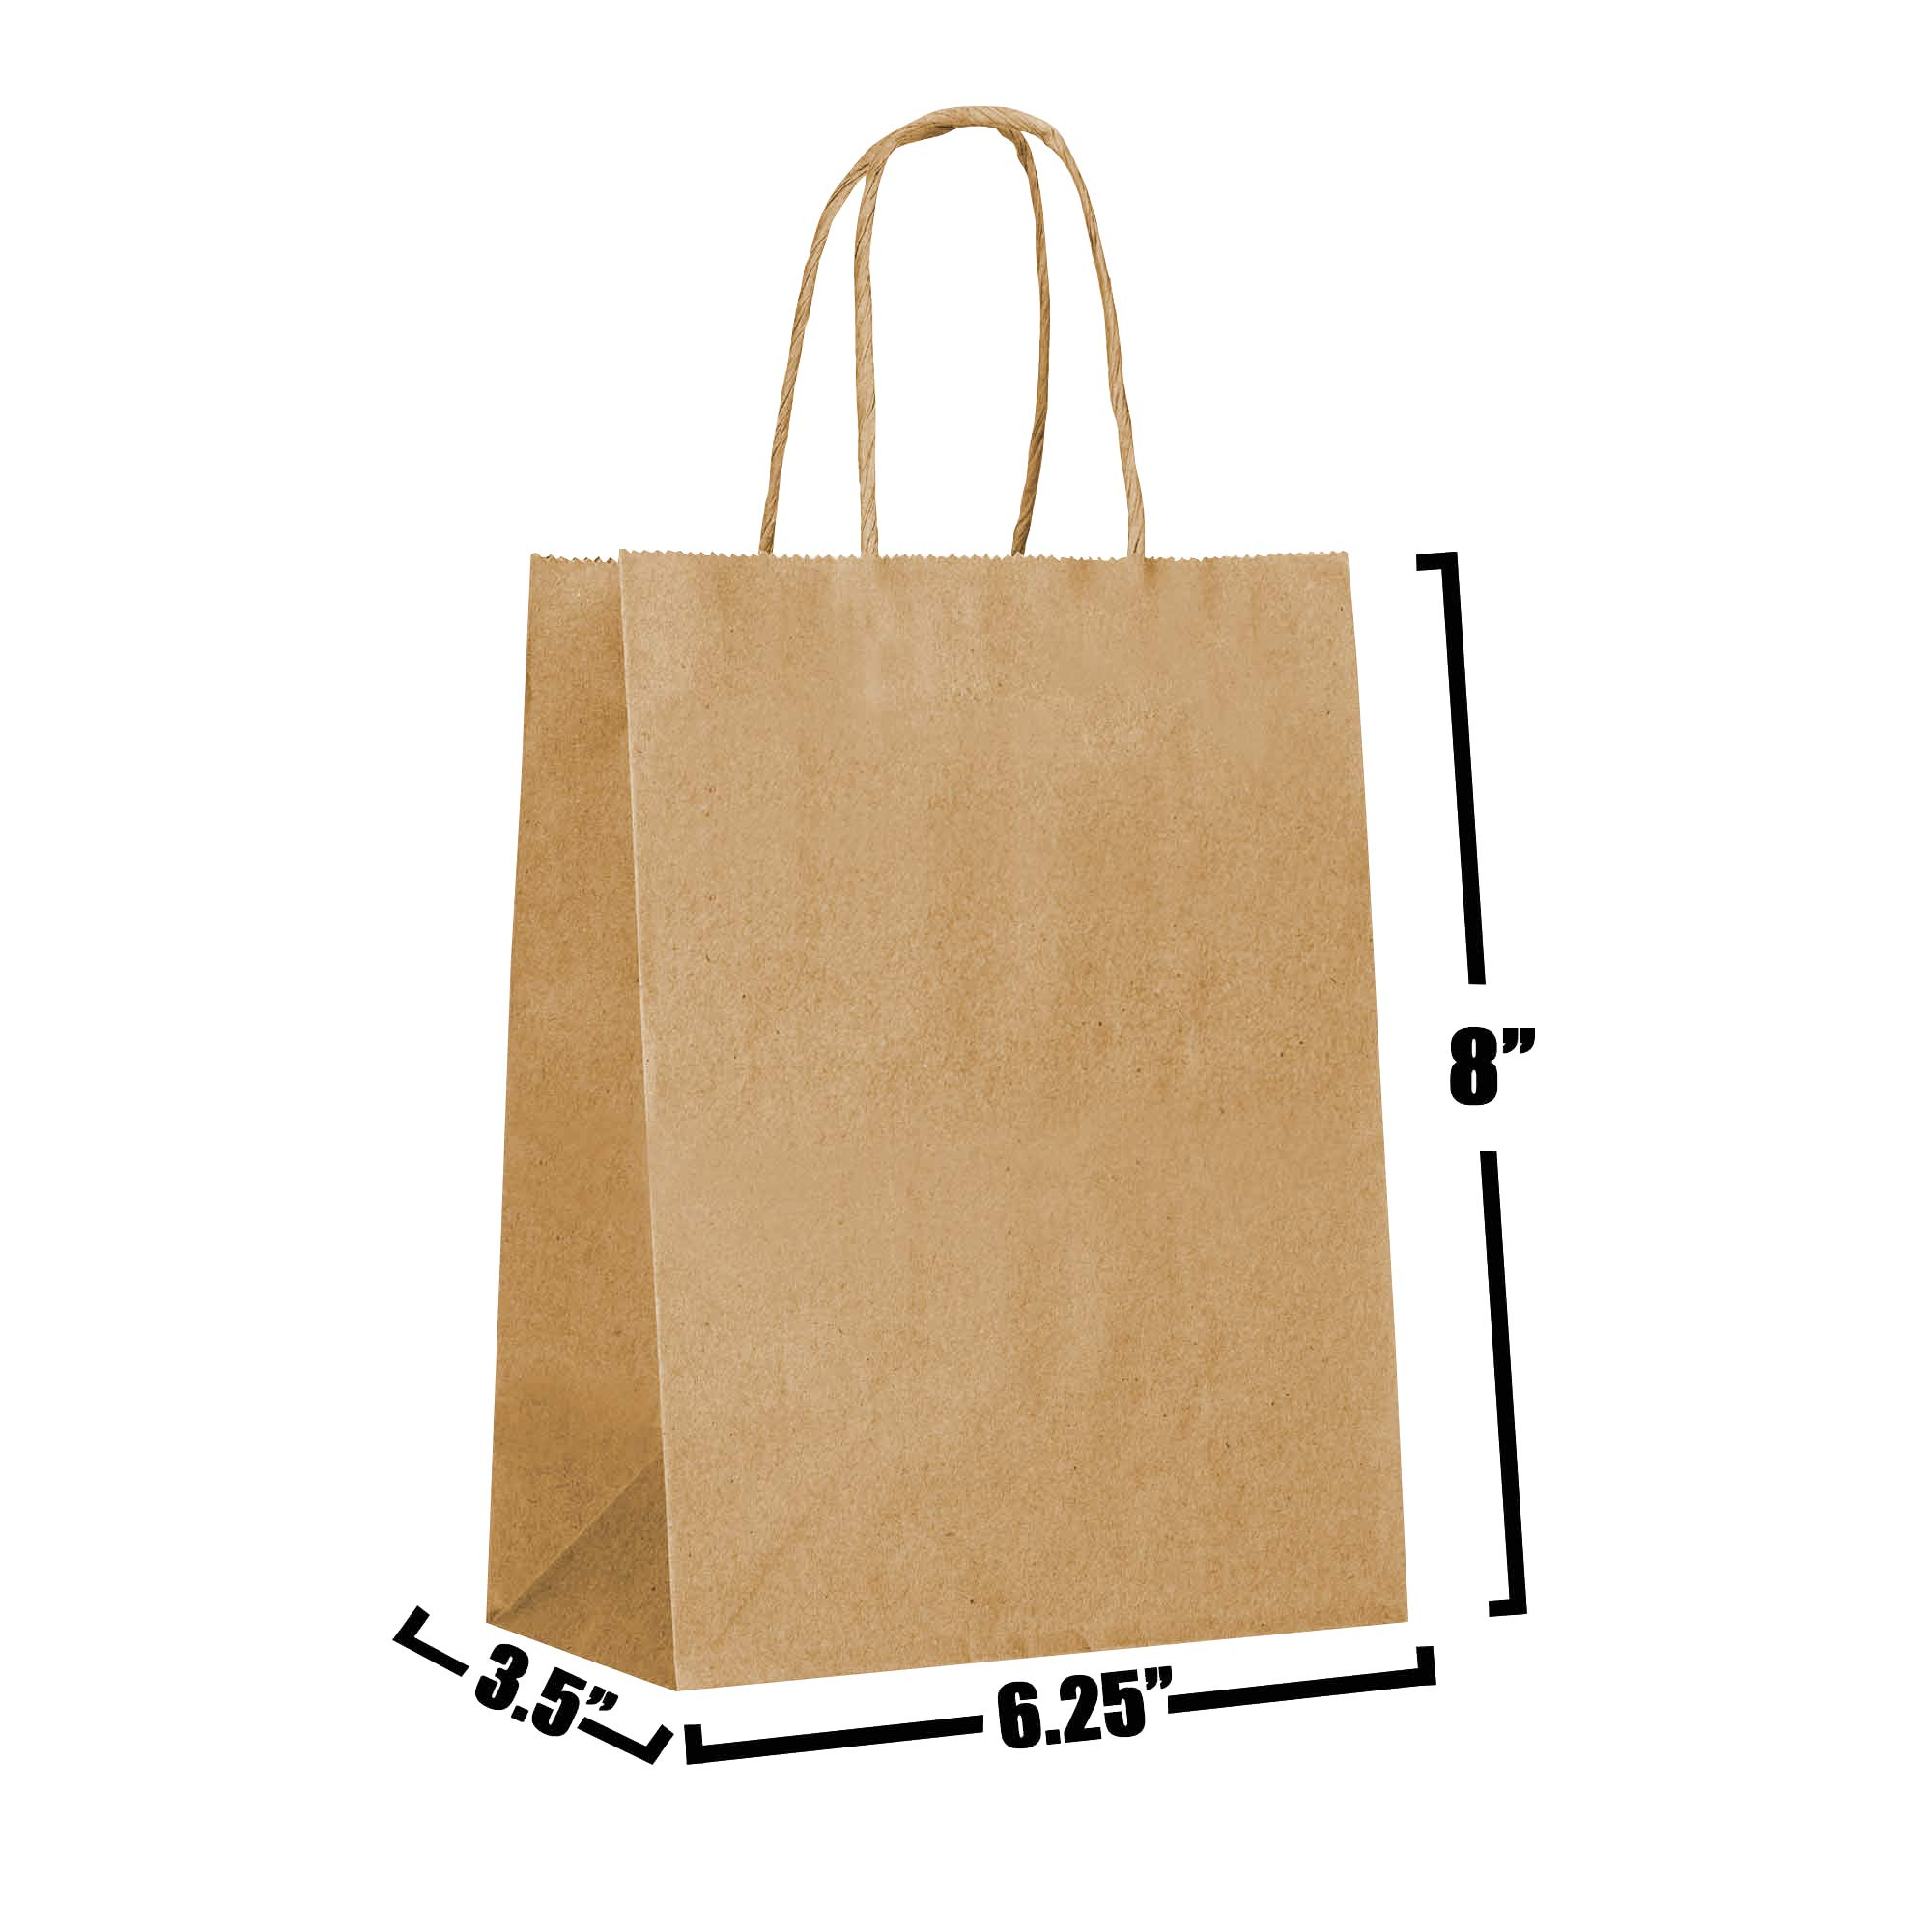 [50 Bags] 6.25 X 3.5 X 8 Brown Kraft Paper Gift Bags Bulk with Handles. Ideal for Shopping, Packaging, Retail, Party, Craft, Gifts, Wedding, Recycled, Business, Goody and Merchandise Bag (Brown)